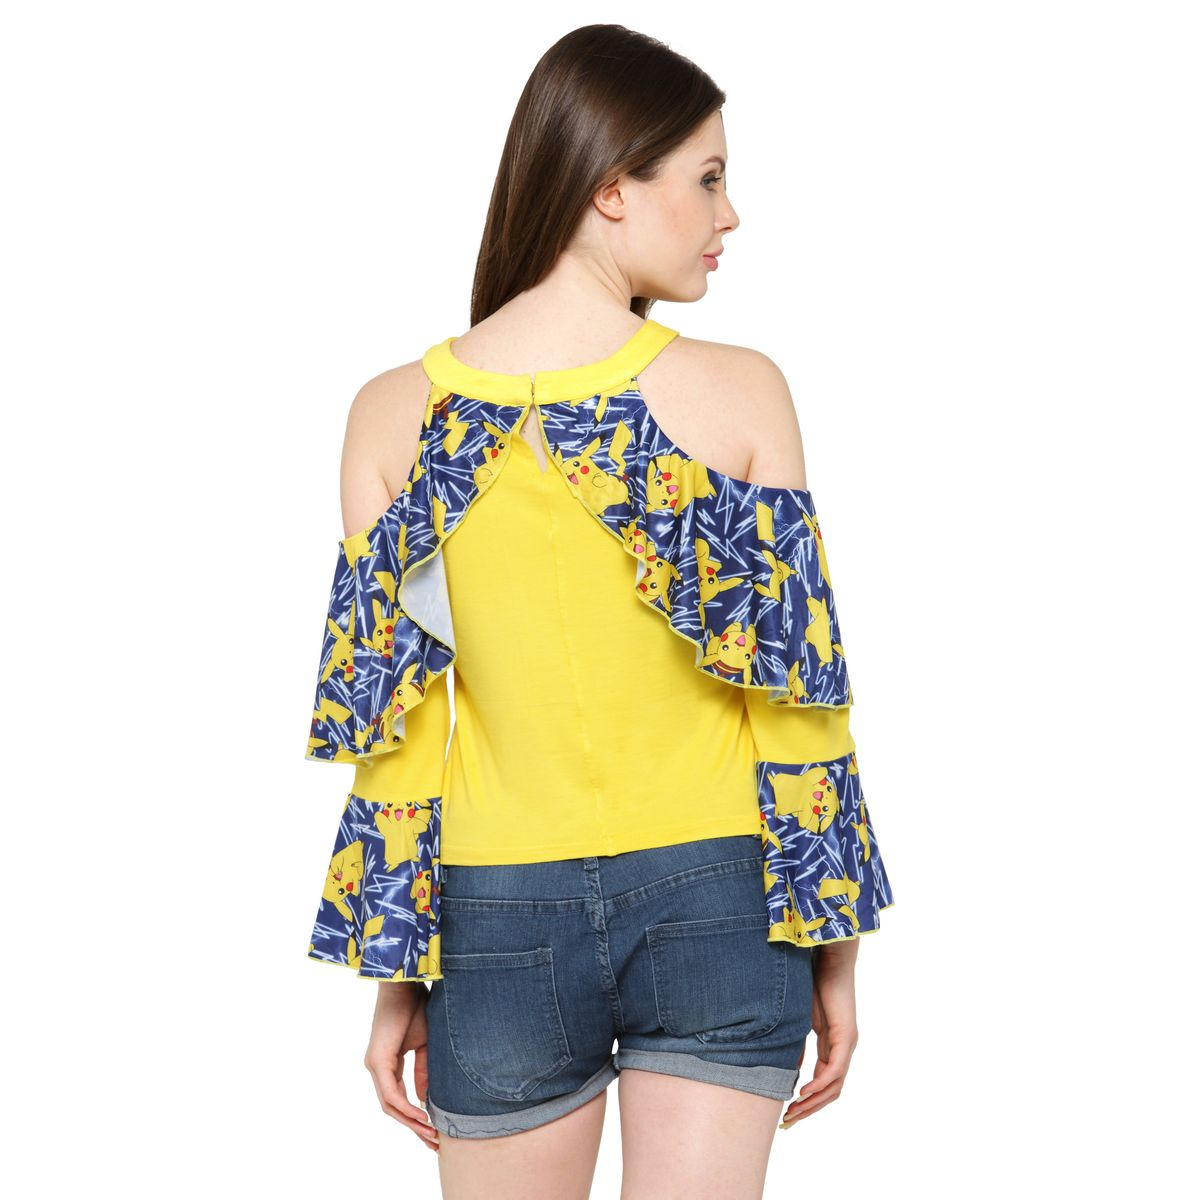 Inspire World Womens Pure Cotton Lycra Top in Bright Yellow Color with Pokemon Poly Lycra Overlay imported fabric